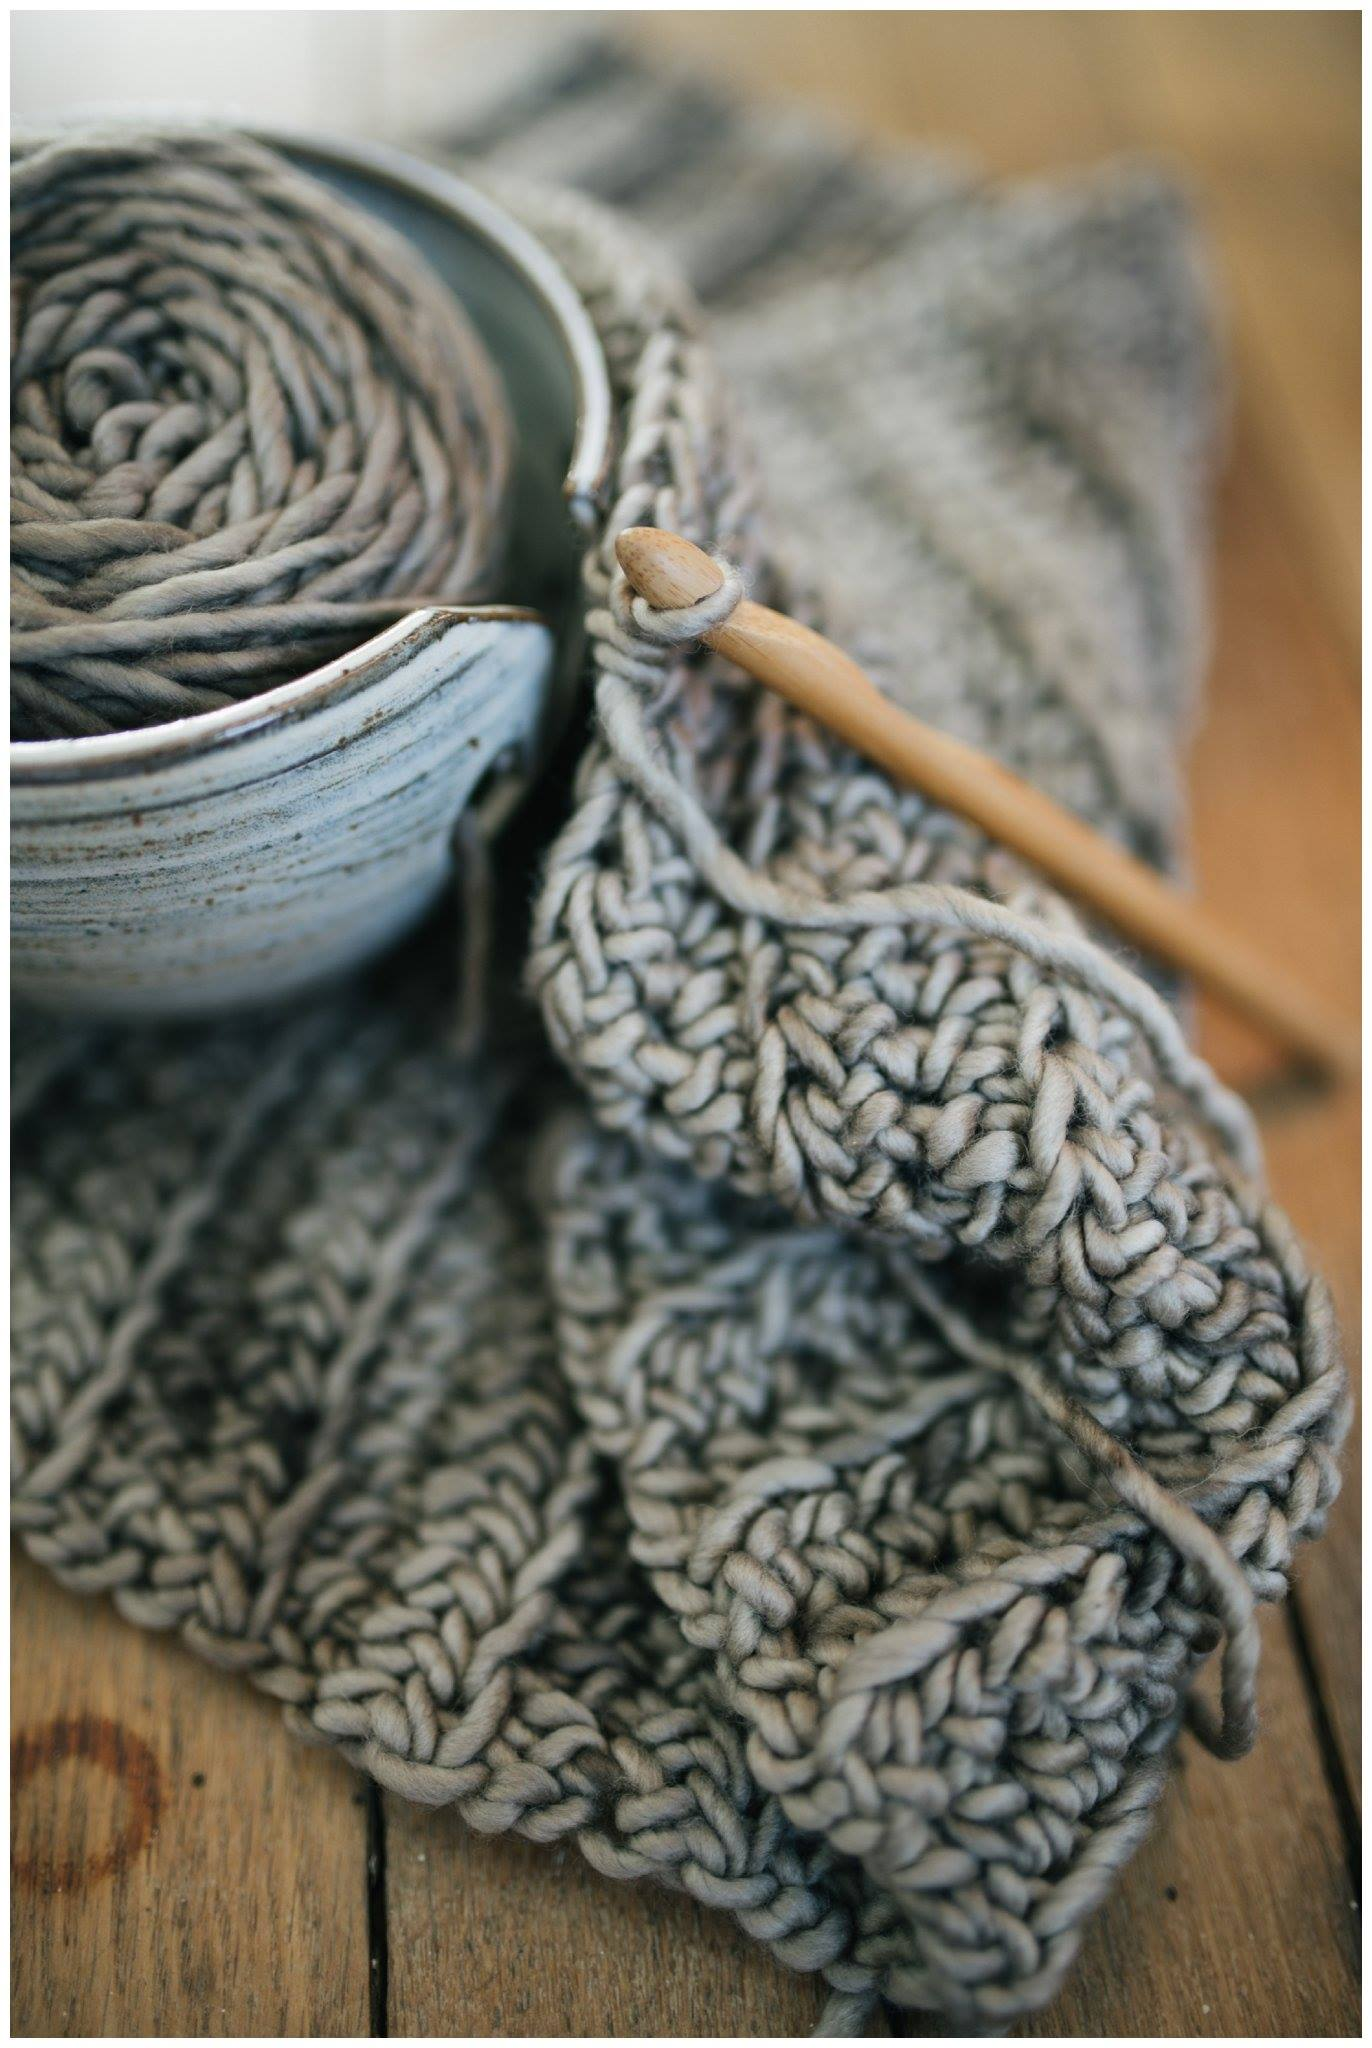 gray-green crocheted yarn